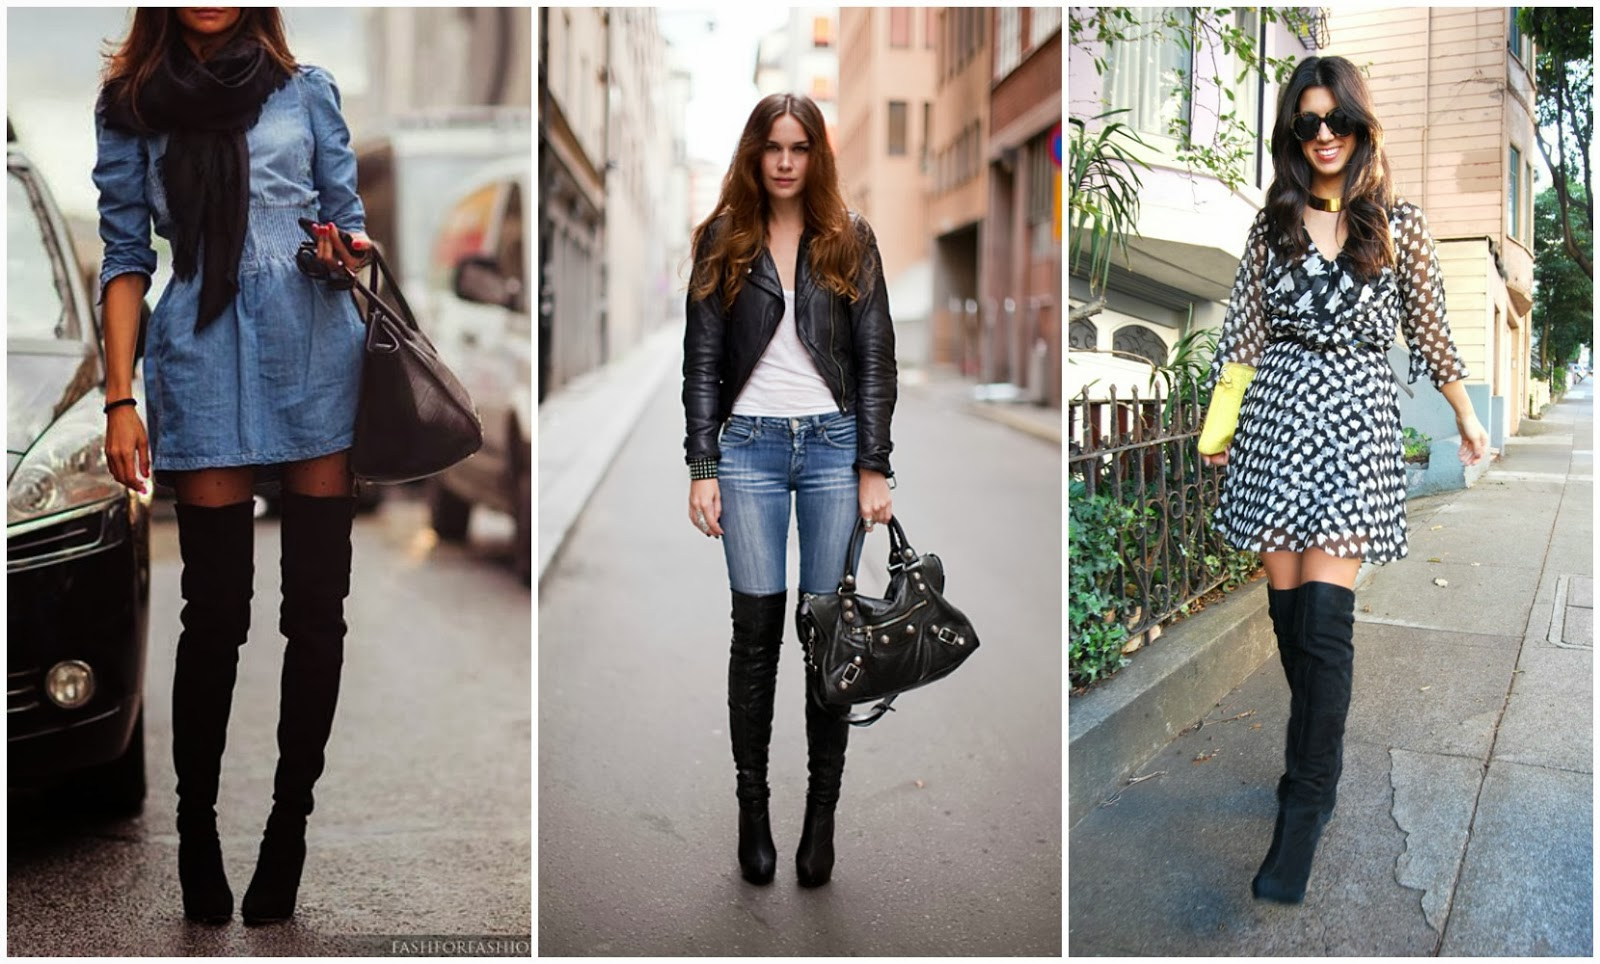 FASHION TREND OF THE WEEK: 5 WAYS TO ROCK KNEE LENGTH/THIGH HIGH